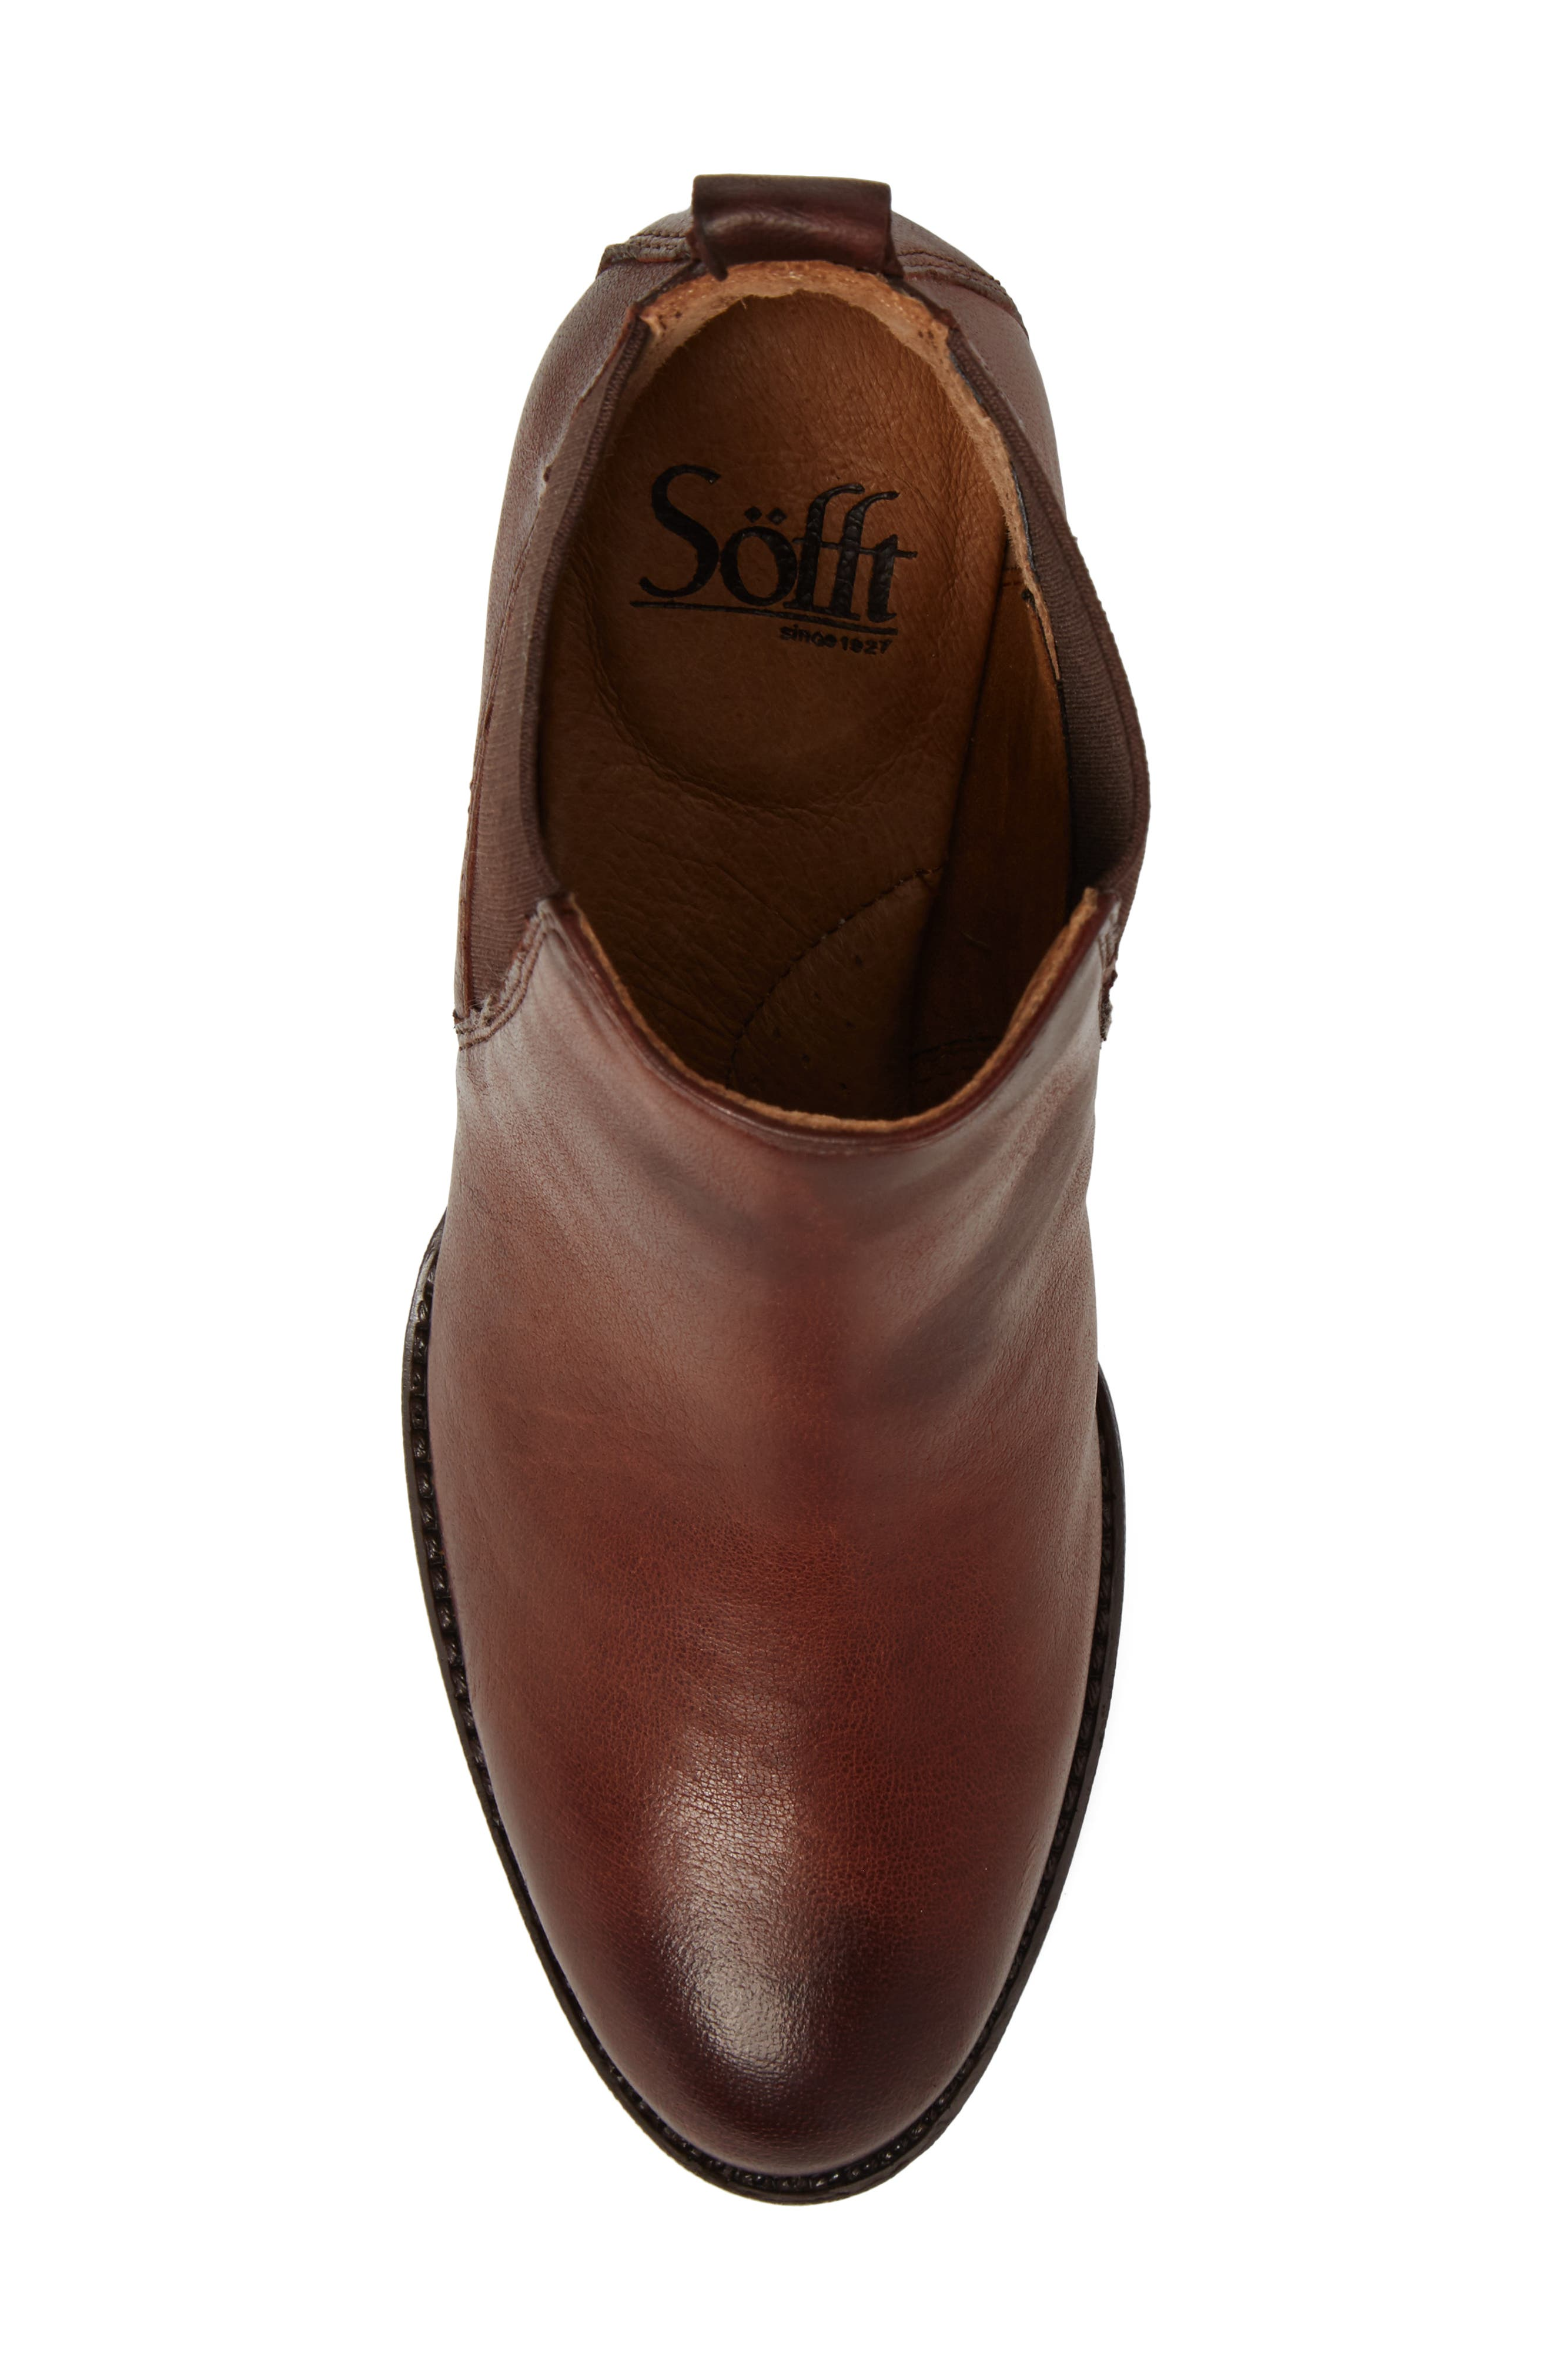 Welling Bootie,                             Alternate thumbnail 5, color,                             CAFFE LEATHER